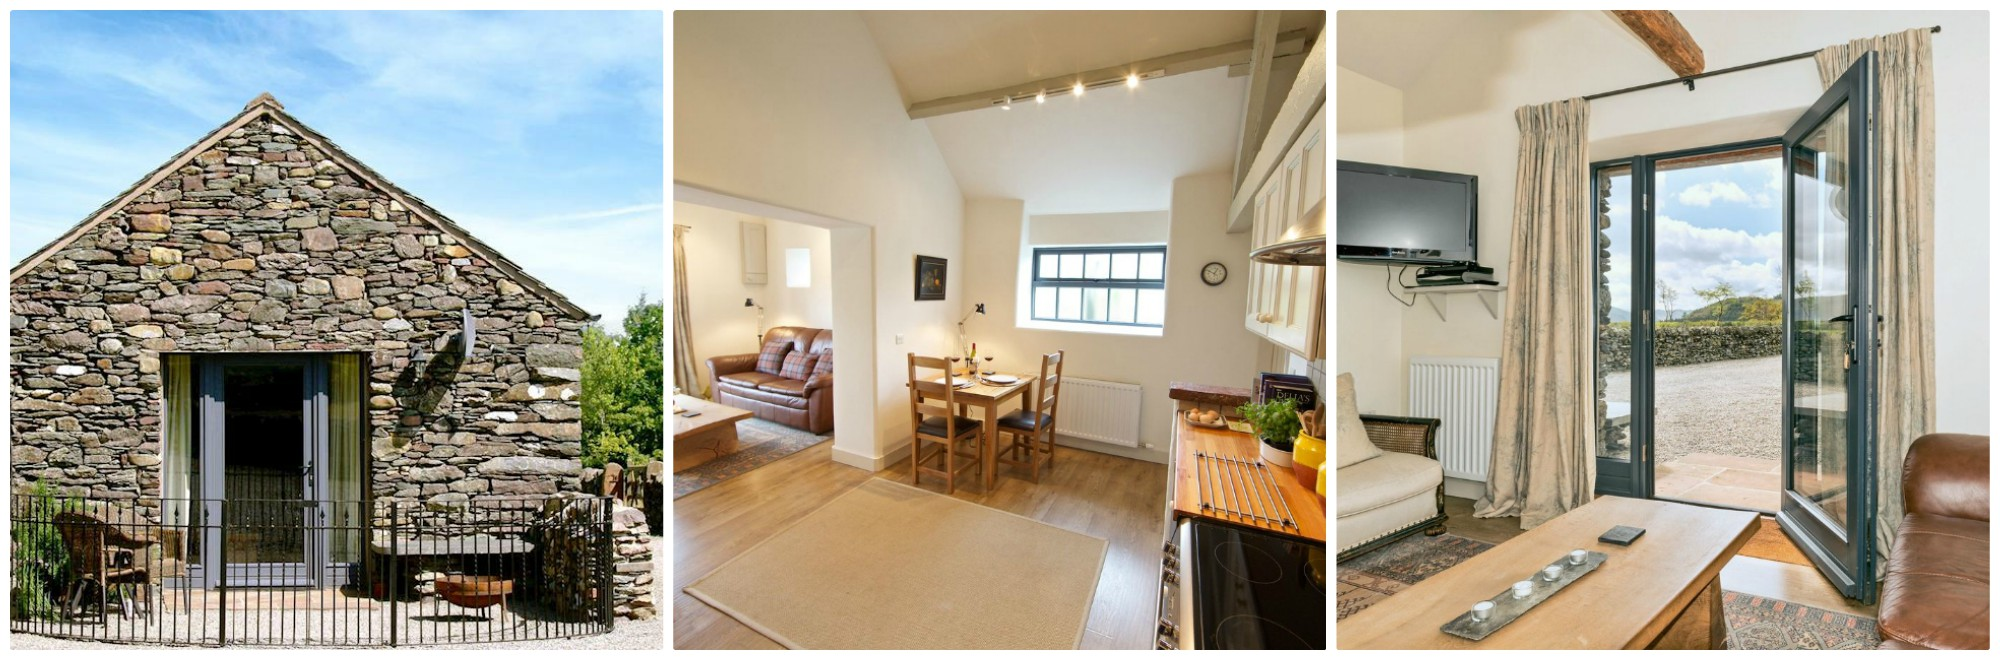 Sleeps 2 and dog friendly  Contemporary Barn Conversion about a mile from the lake of Ullswater